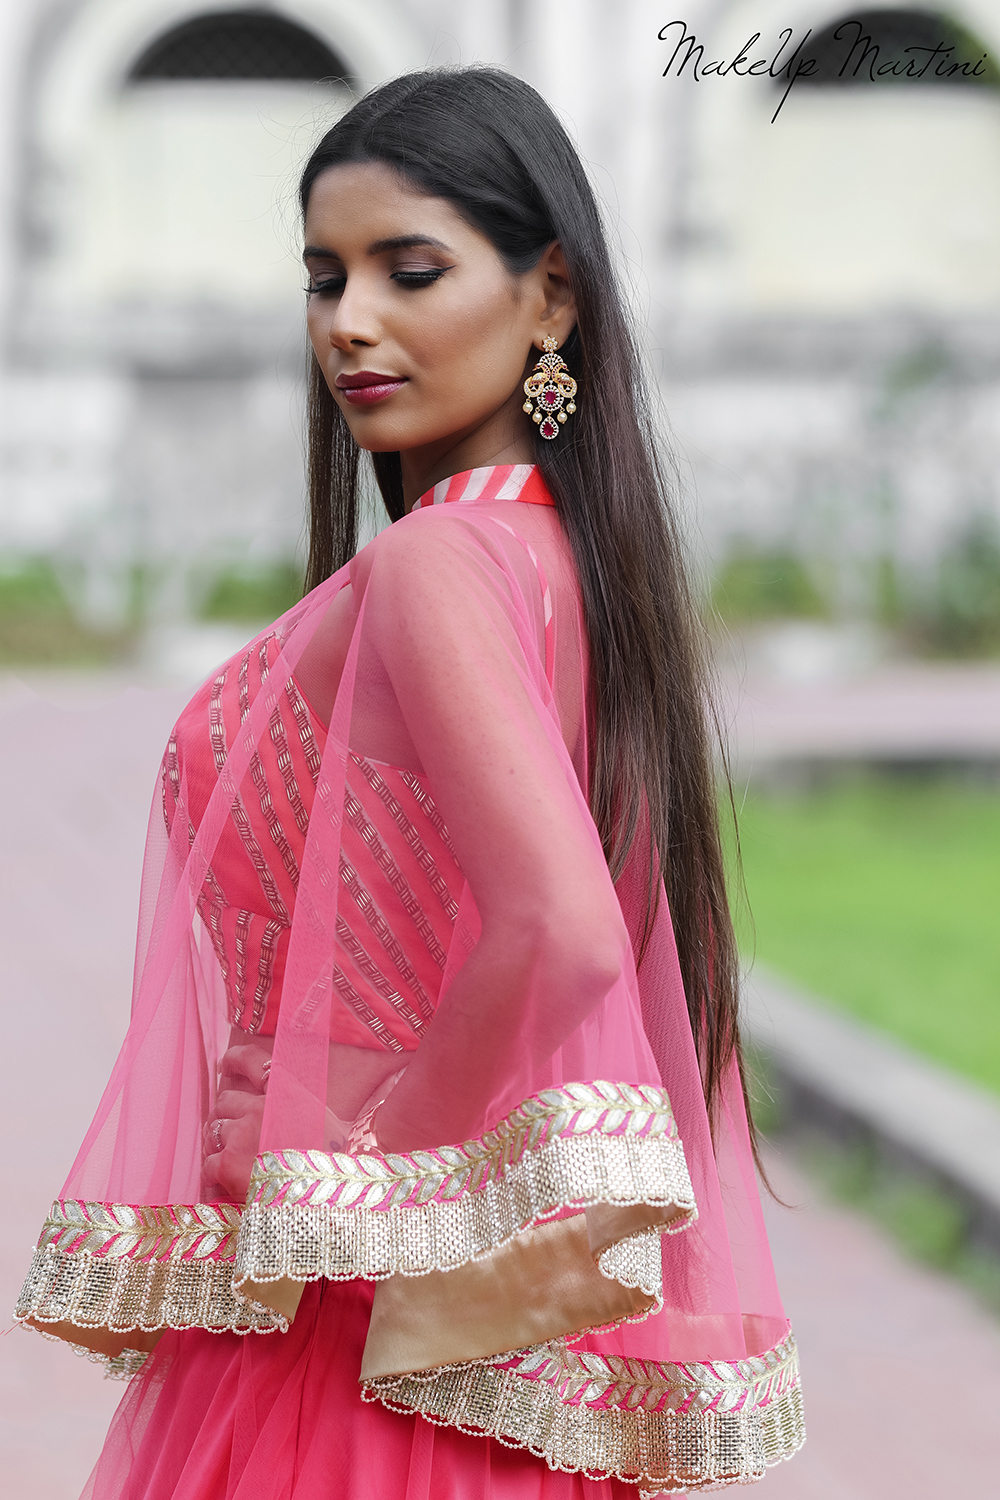 Style Pink Lehenga With Cape Jacket